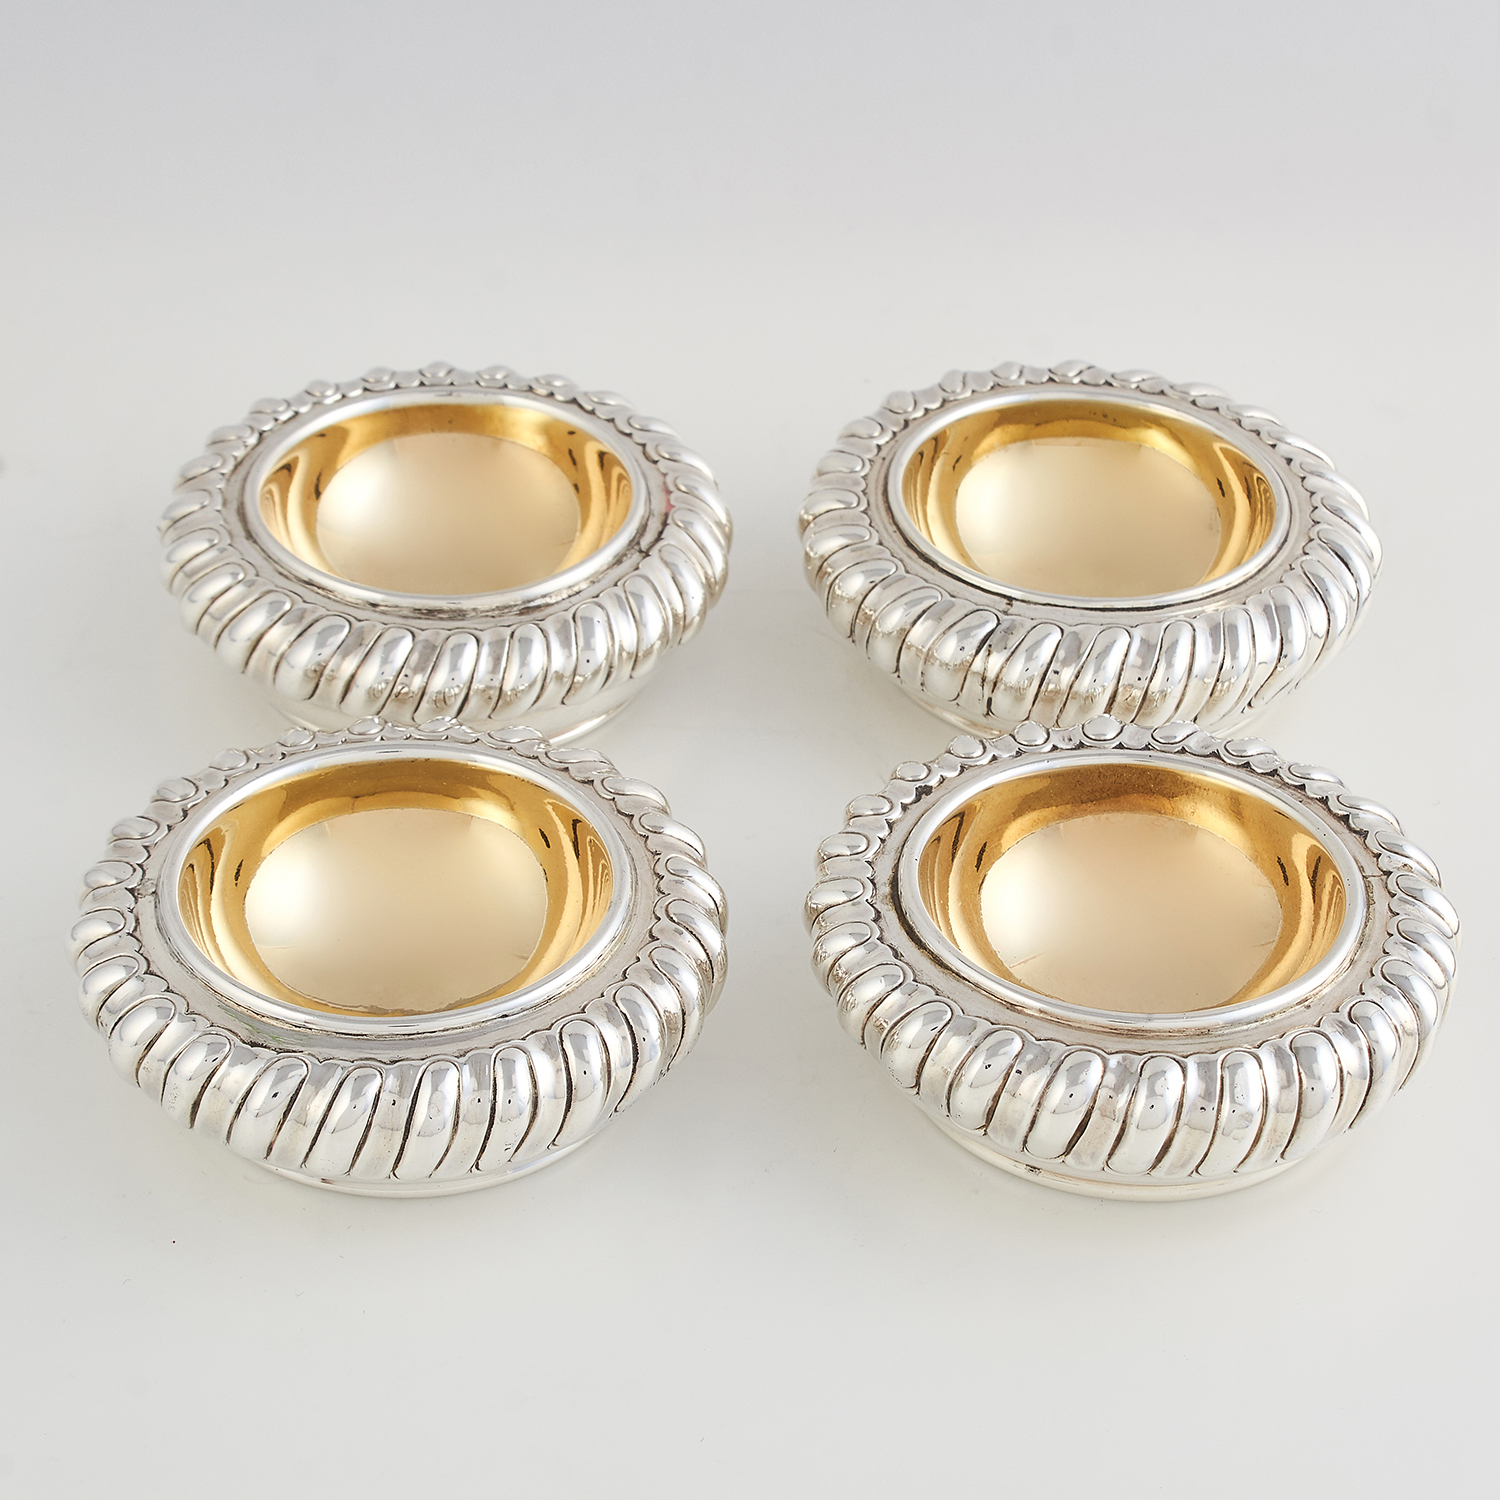 Los 65 - SET OF FOUR ANTIQUE GEORGE IV STERLING SILVER SALT CELLARS, JOSEPH ANGELL LONDON 1824 of circular